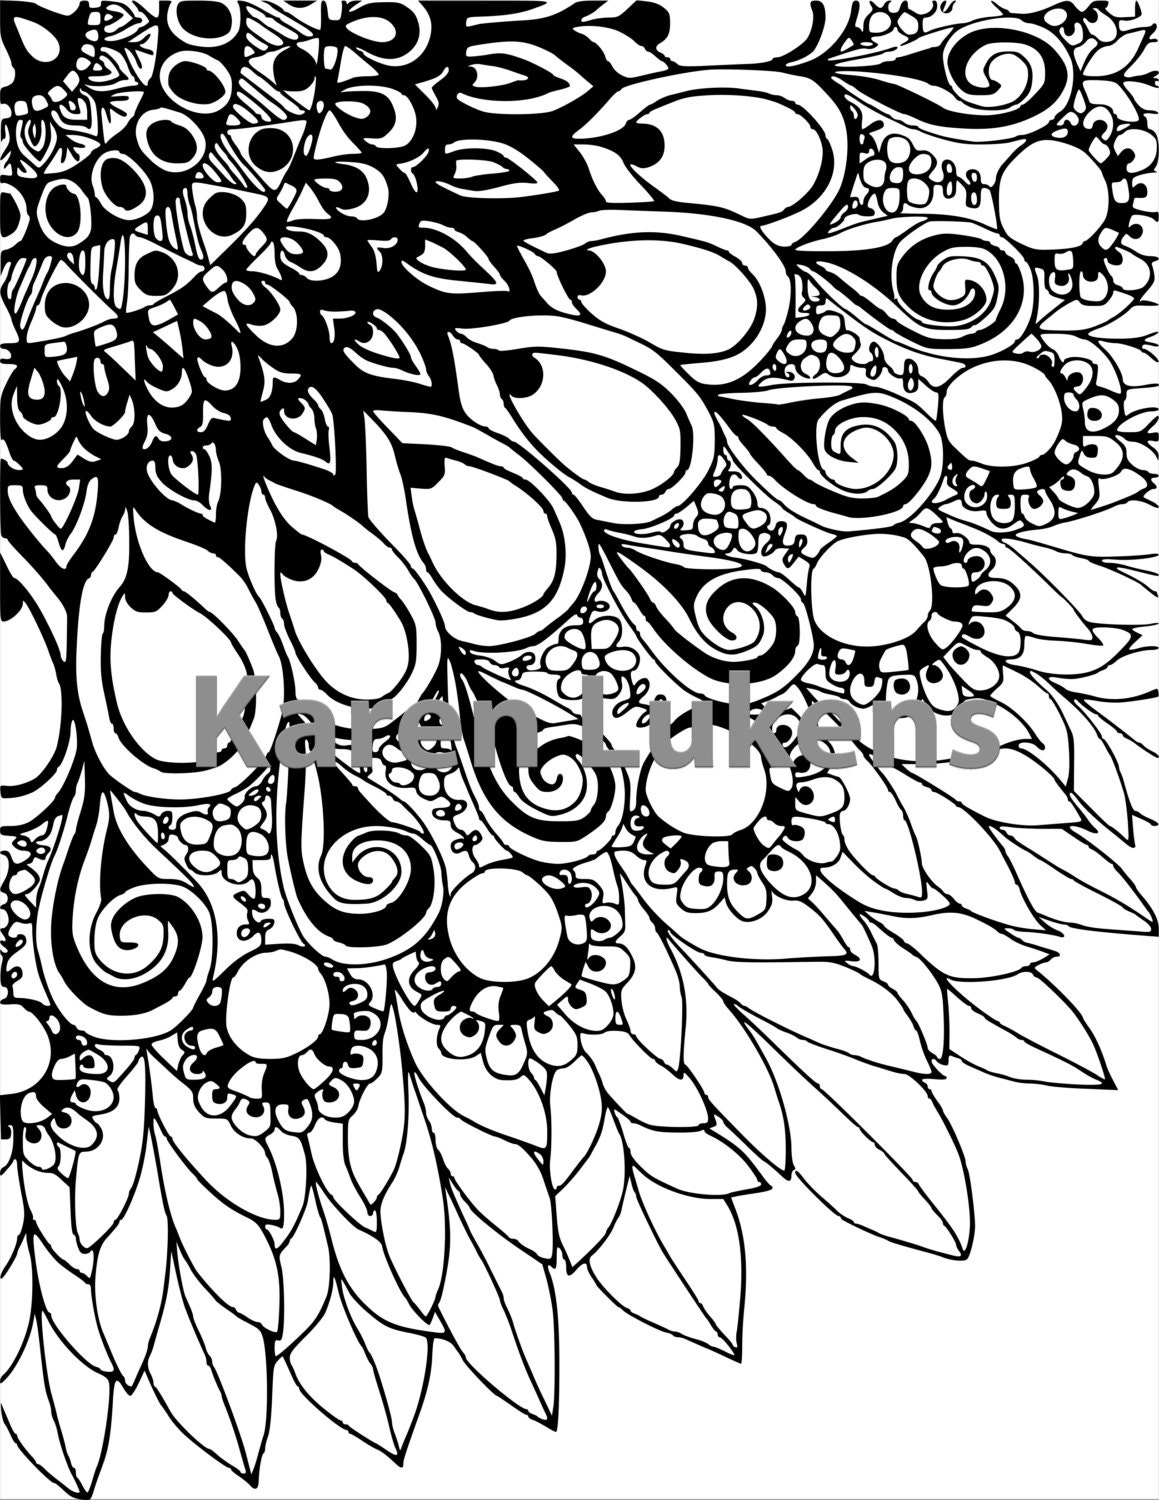 Mandala Flower 1 Adult Coloring Book Page Printable Instant Download